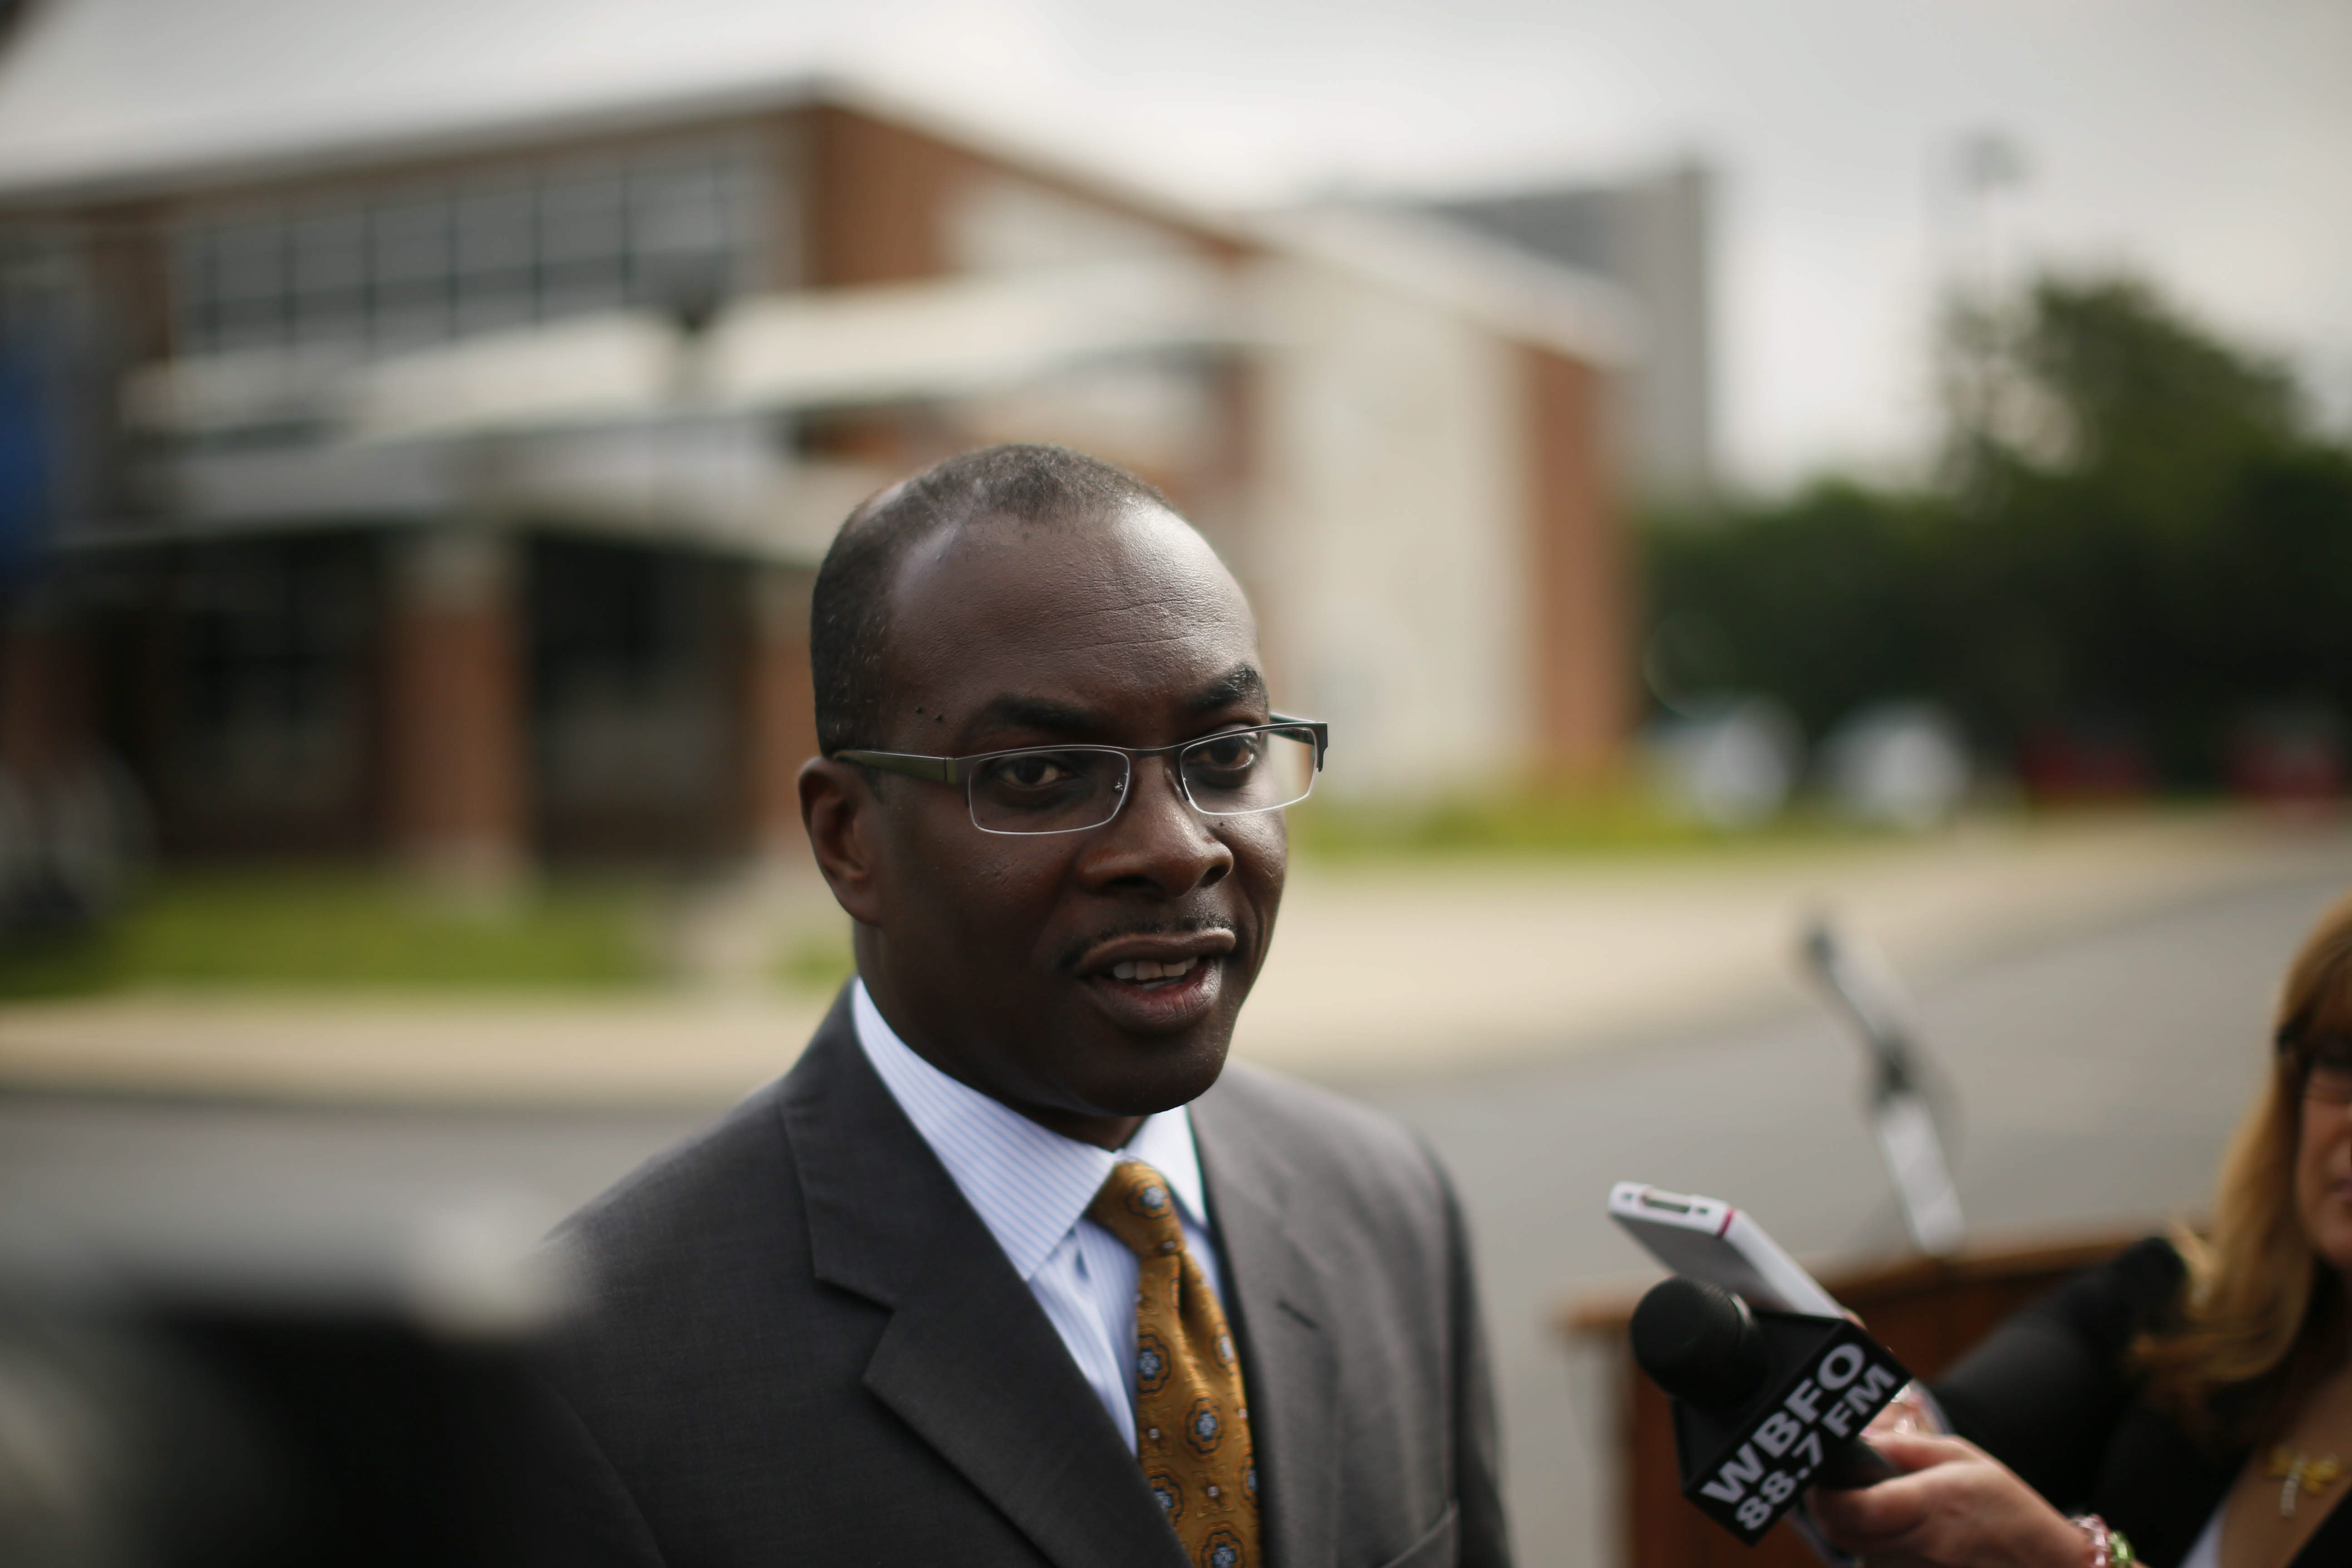 Mayor Byron W. Brown is working to reverse public perceptions that he has not been engaged in the issues involving the Buffalo Public Schools.